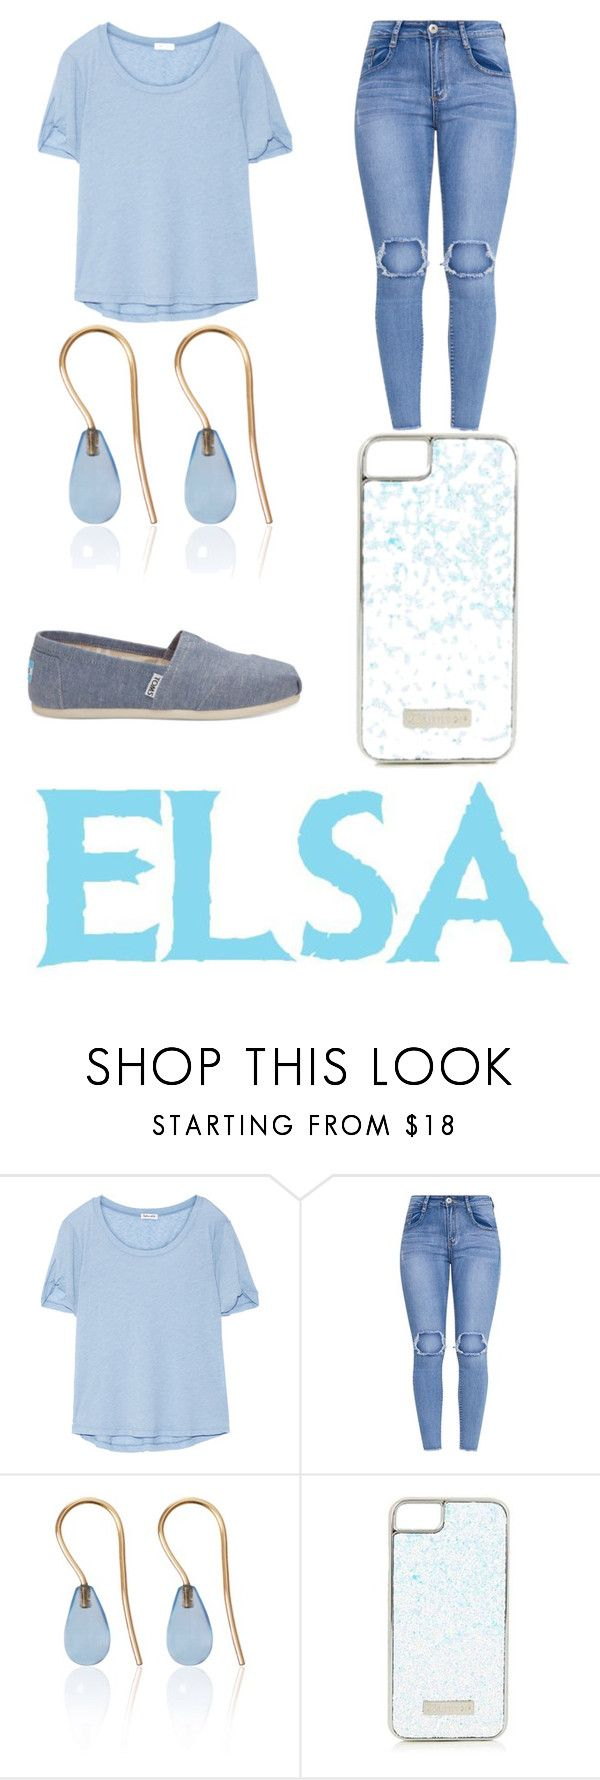 """""""Modern Elsa"""" by krushing409 ❤ liked on Polyvore featuring Splendid, Love Is, Skinnydip, TOMS, Disney and modern"""